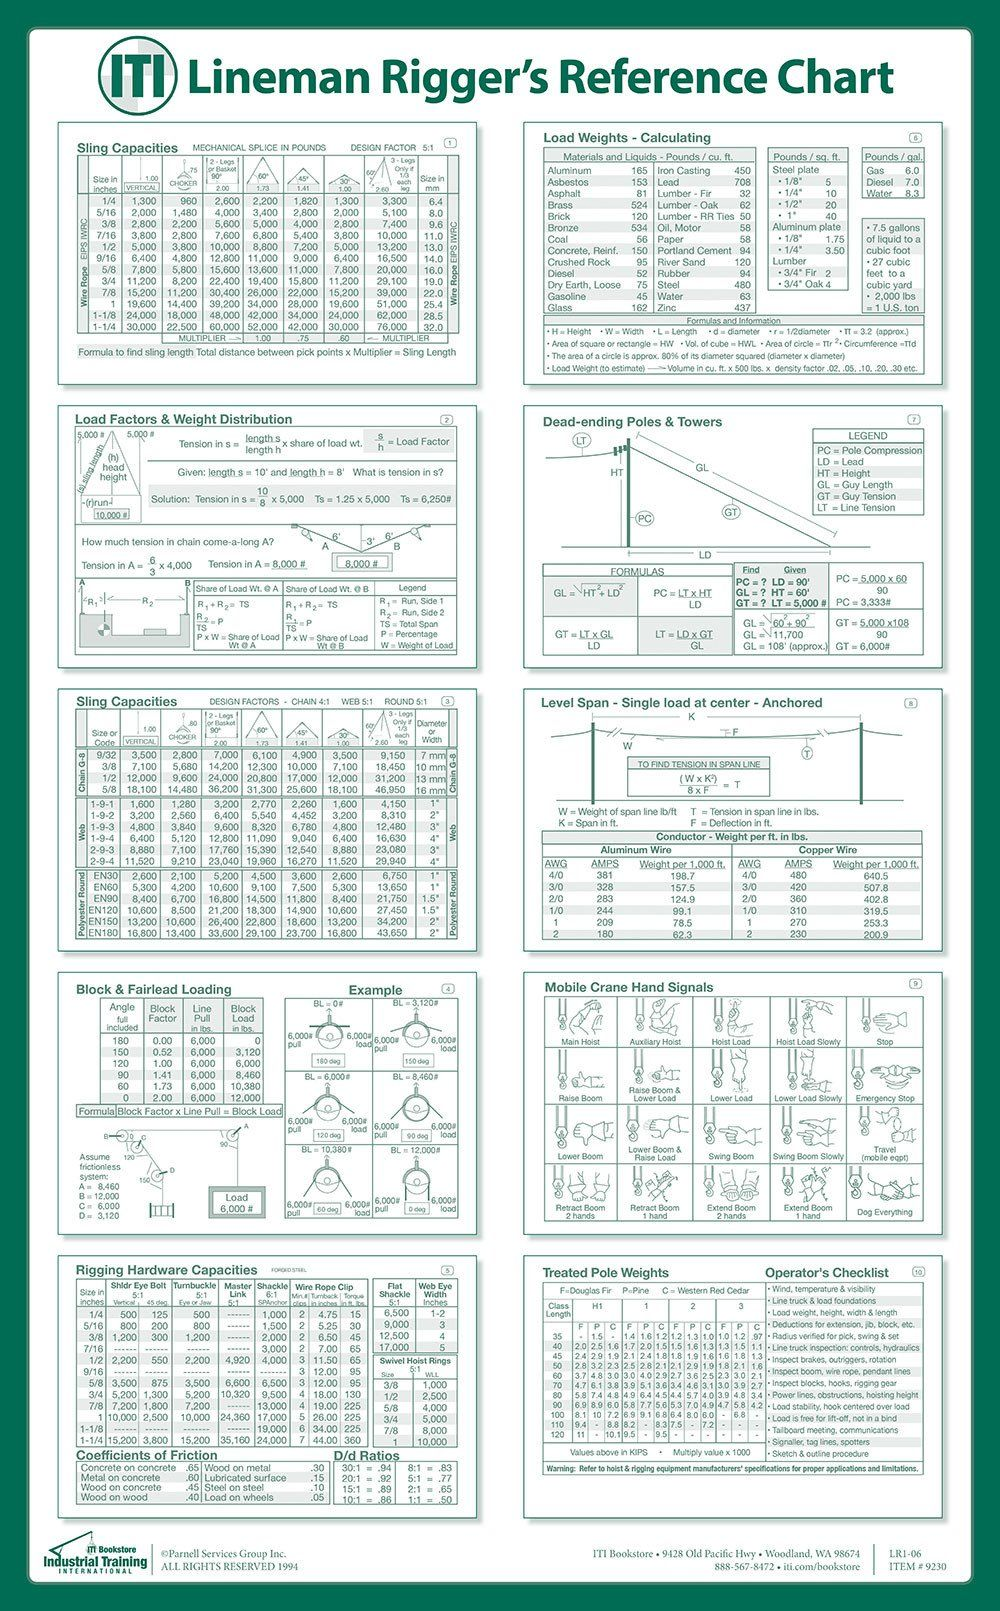 Lineman Rigger Reference Chart Poster Riggers Reference Chart Lineman